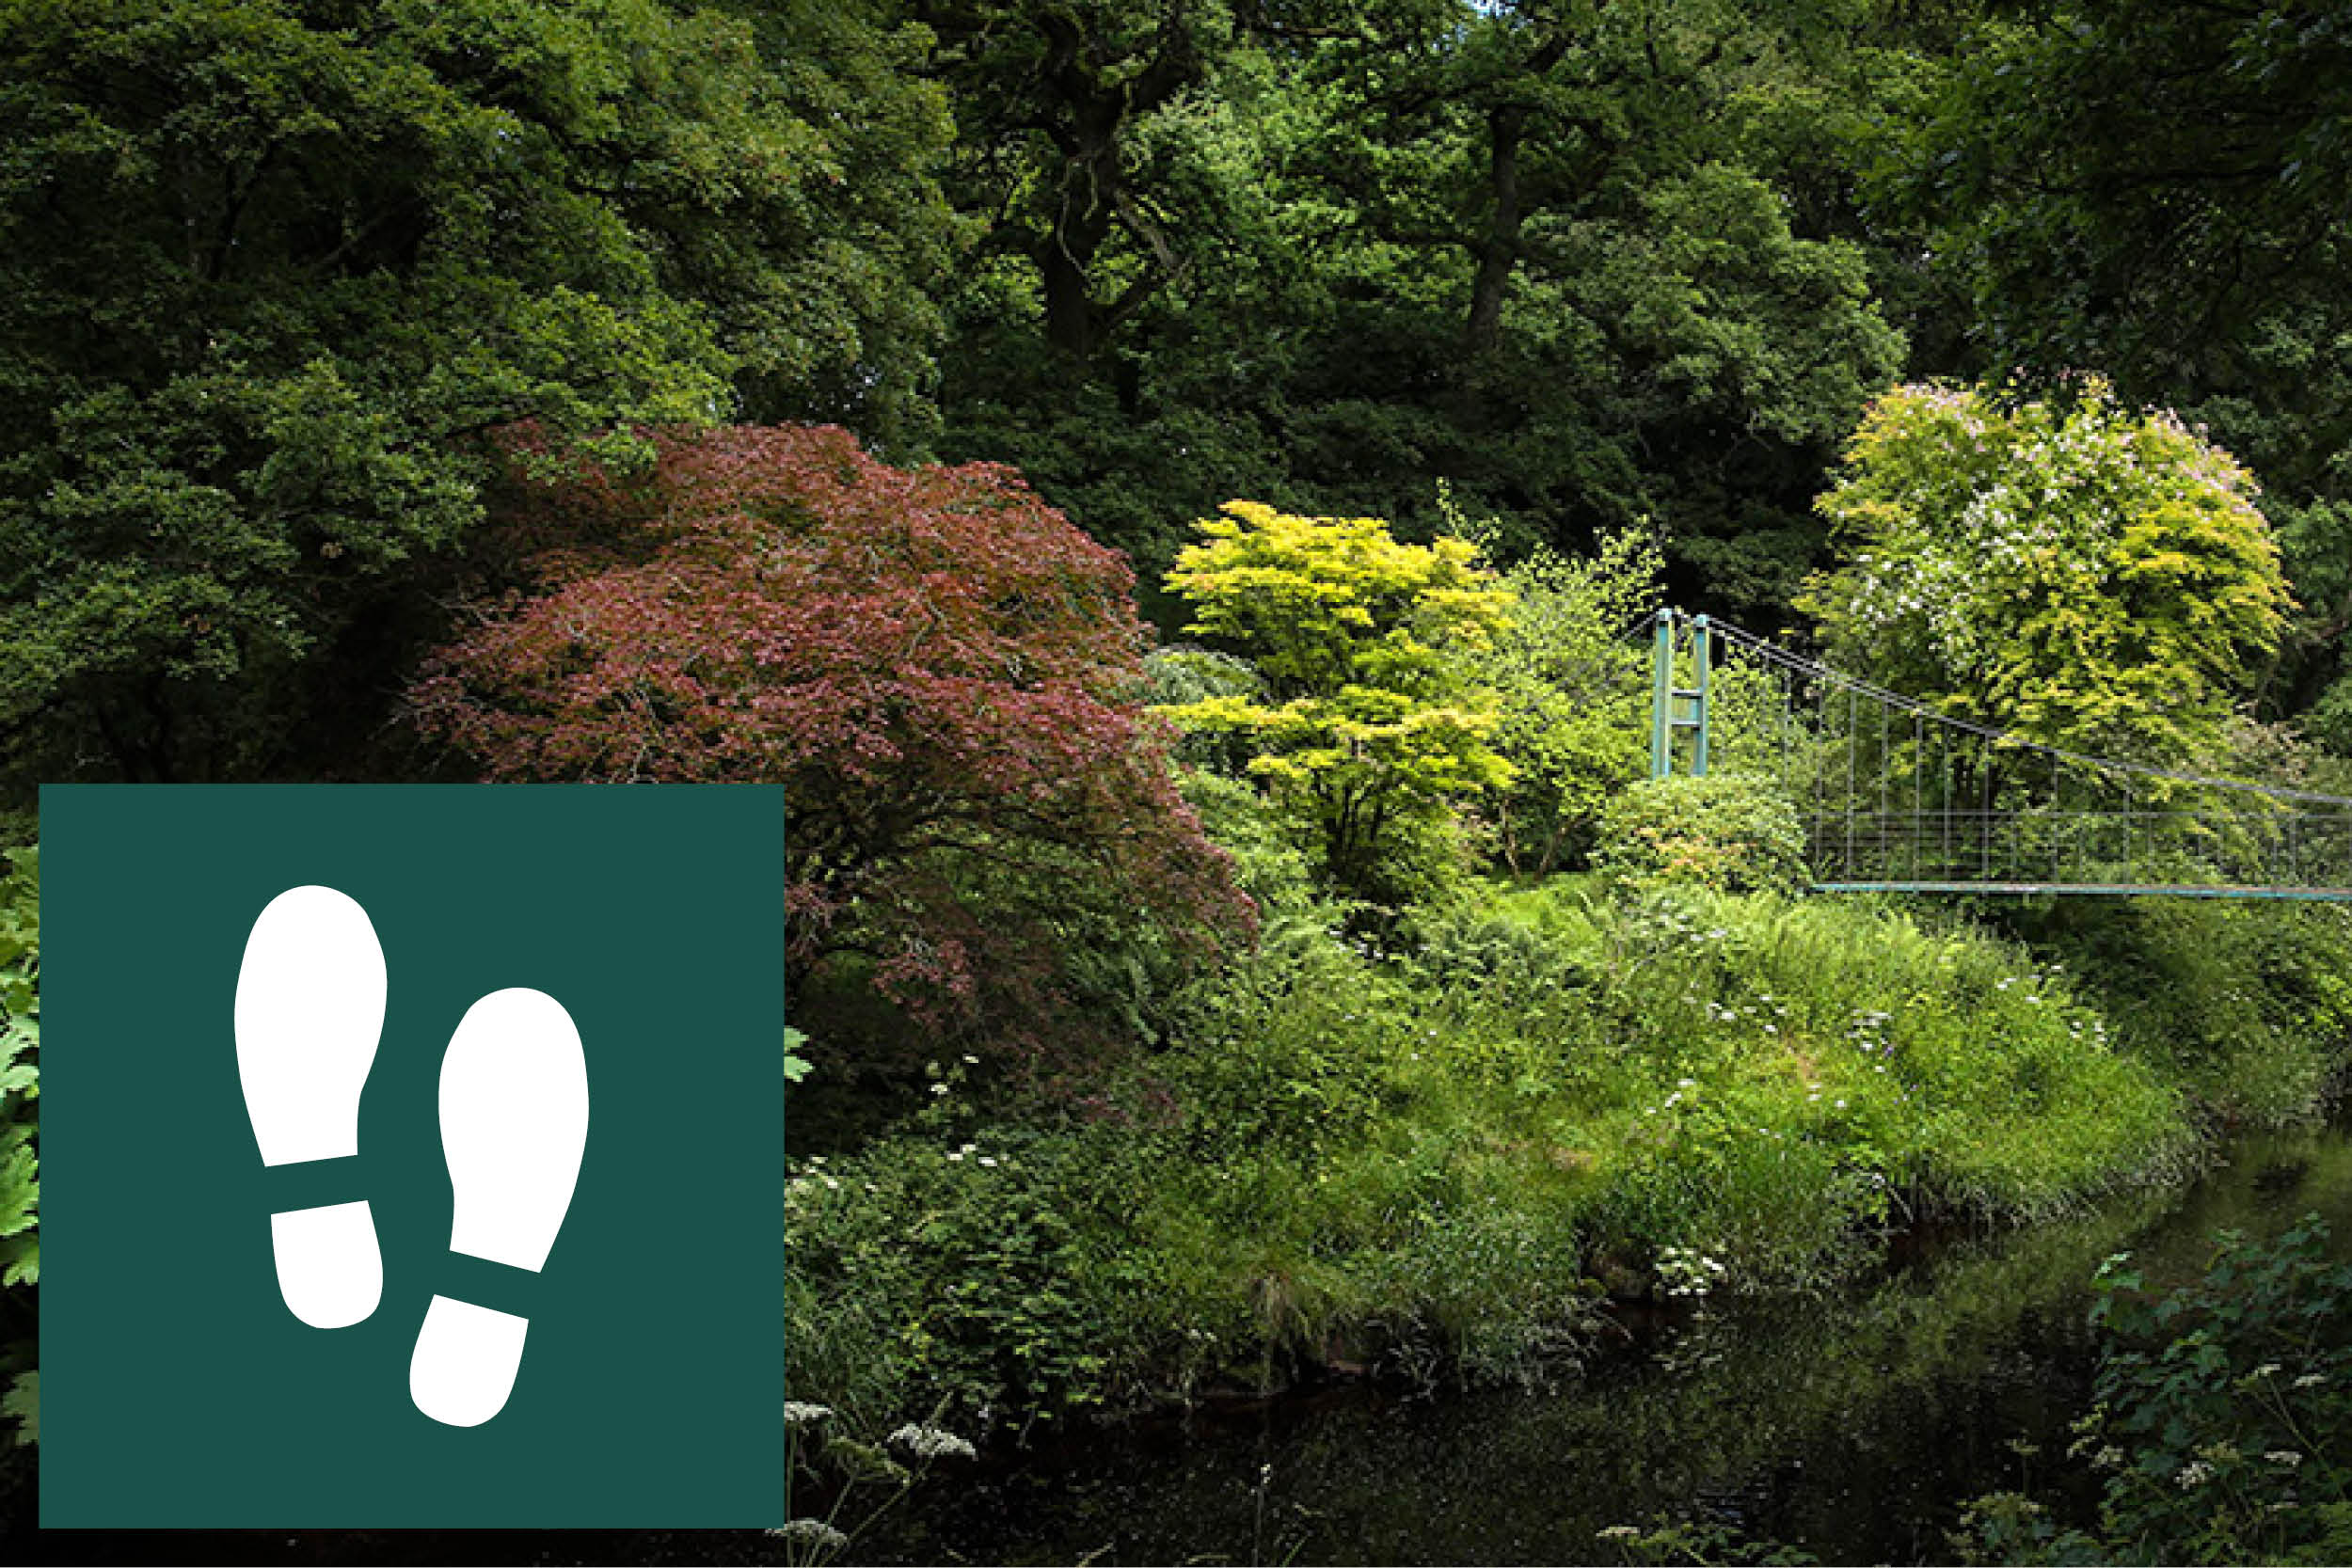 WALKING  Colebrooke Estate is one of the most beautiful places to walk and is a haven for wildlife whether in woodland or riverside.  There are numerous private lanes for walking, guests can walk off the tracks however we ask that you keep dogs on leads at all times and shut gates were necessary.